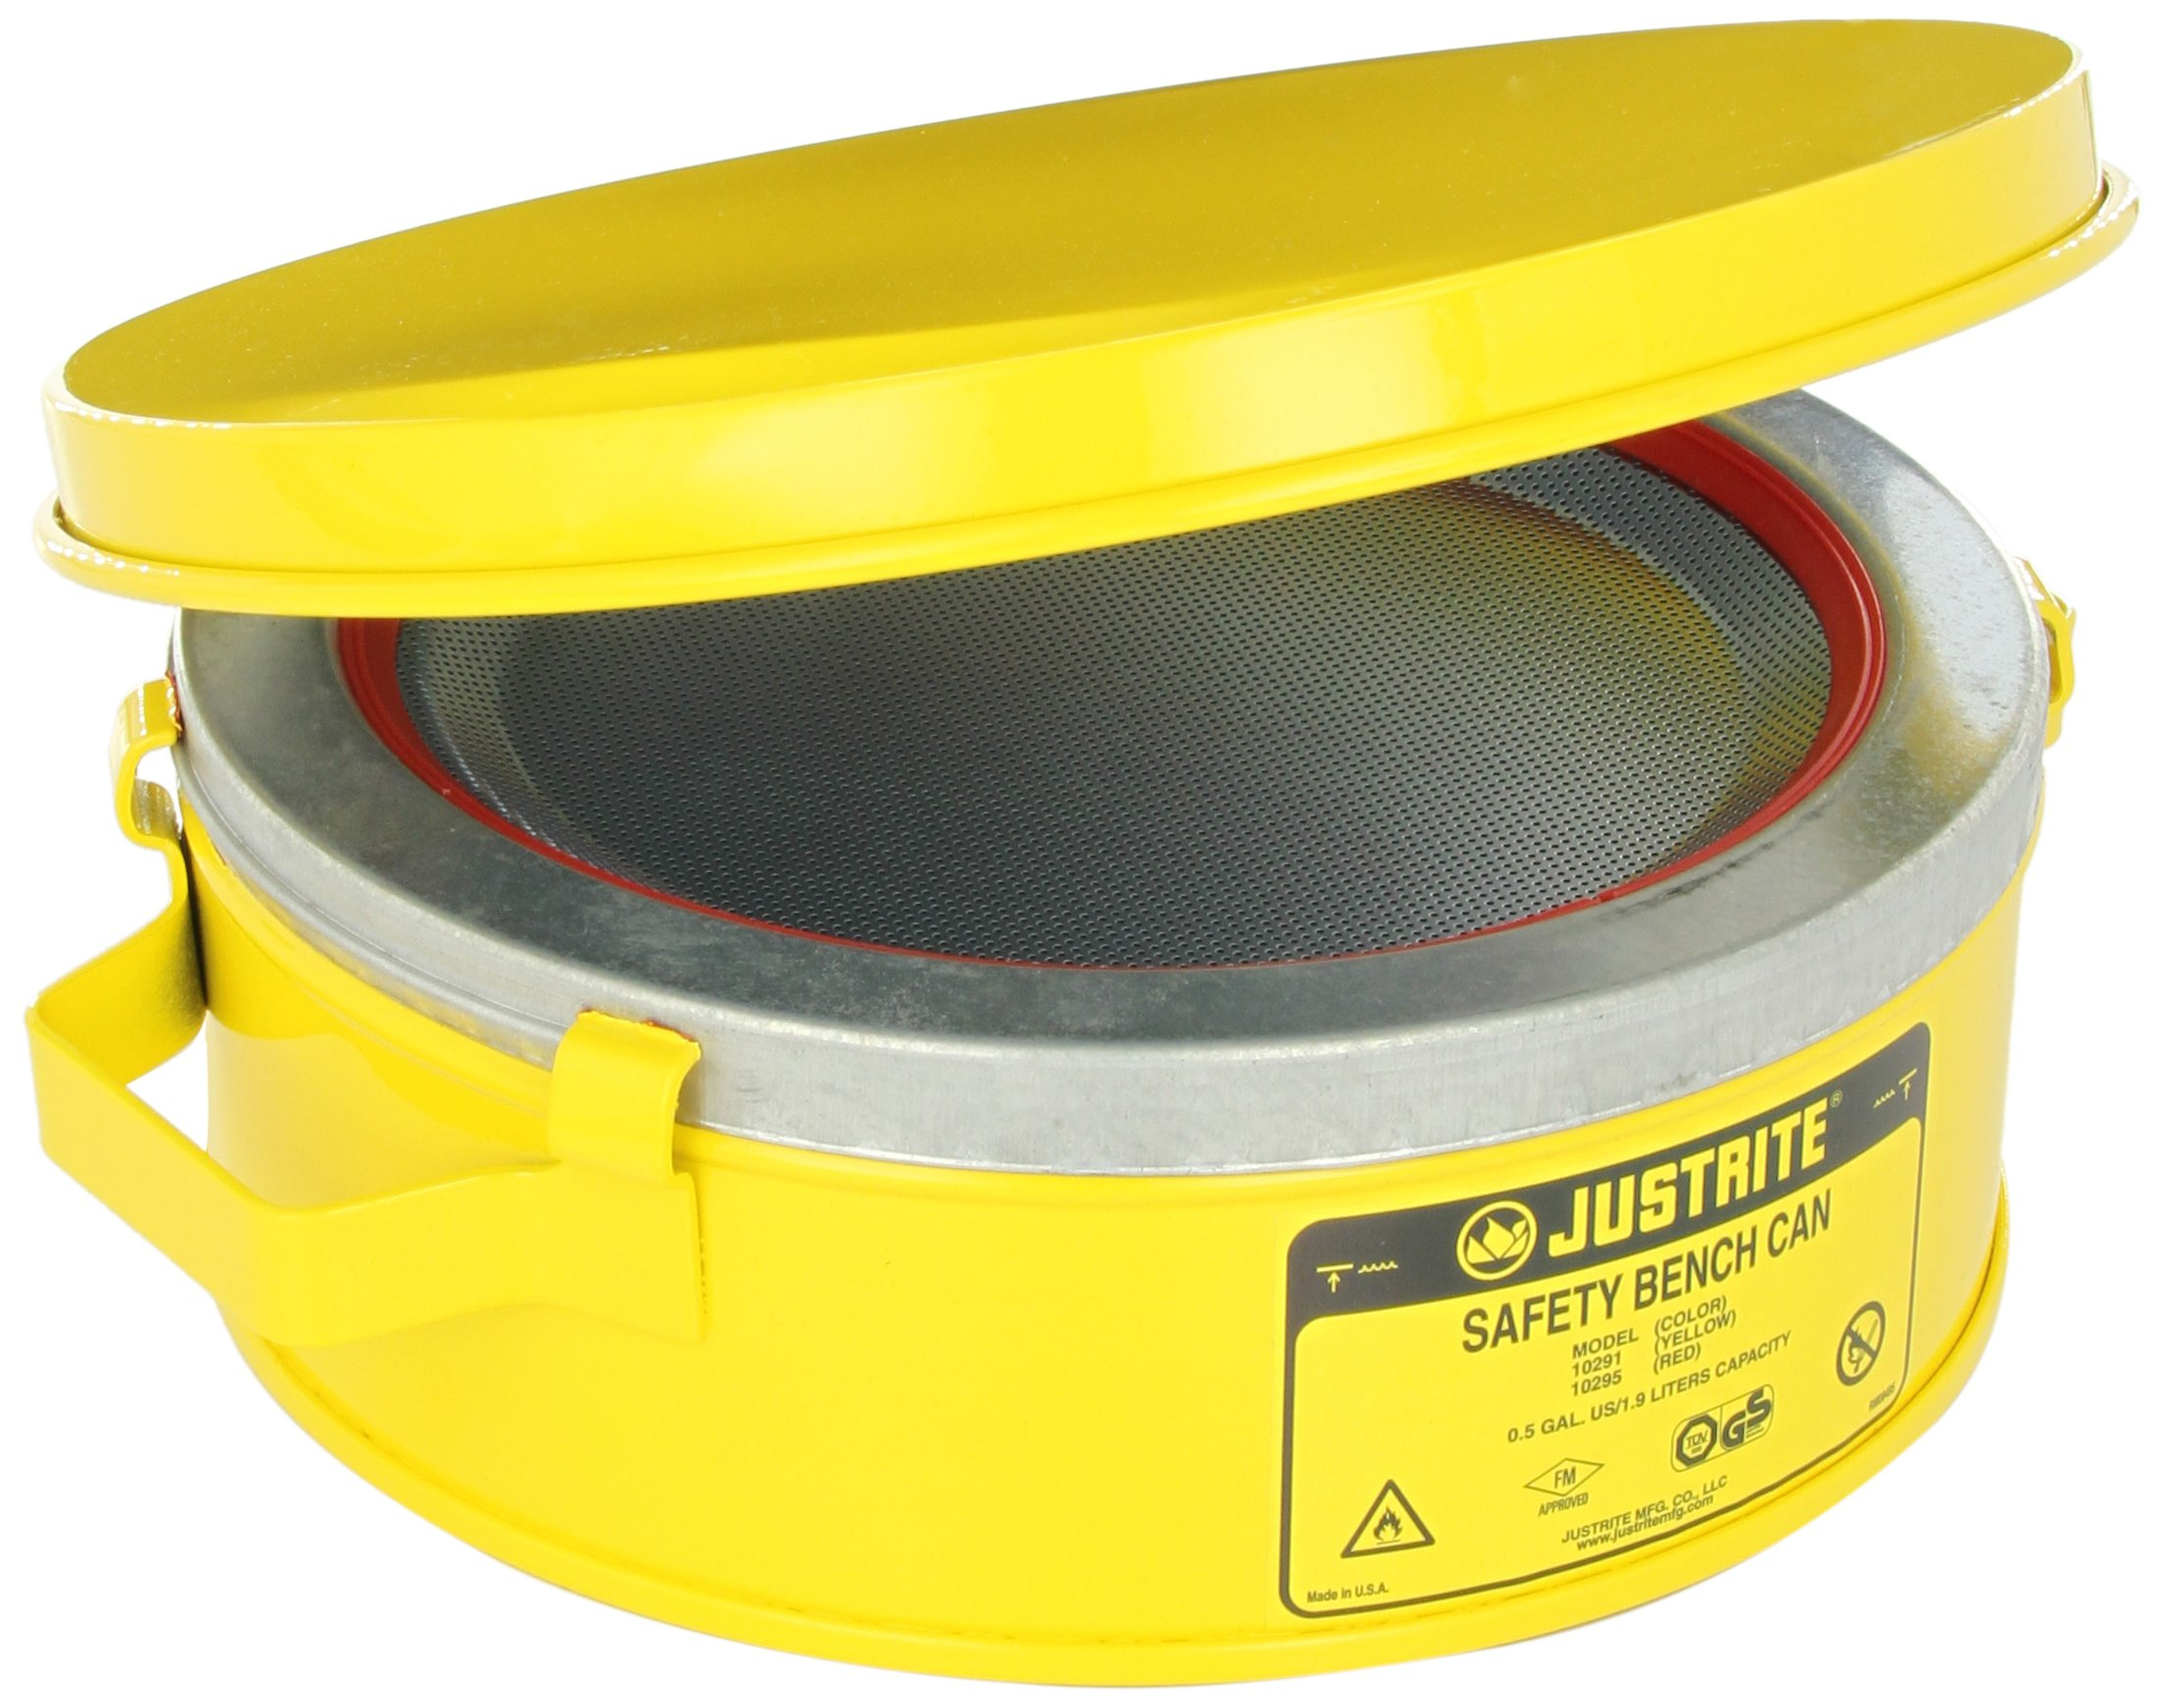 Justrite 10291 Steel Bench Can, 2L Capacity, Yellow